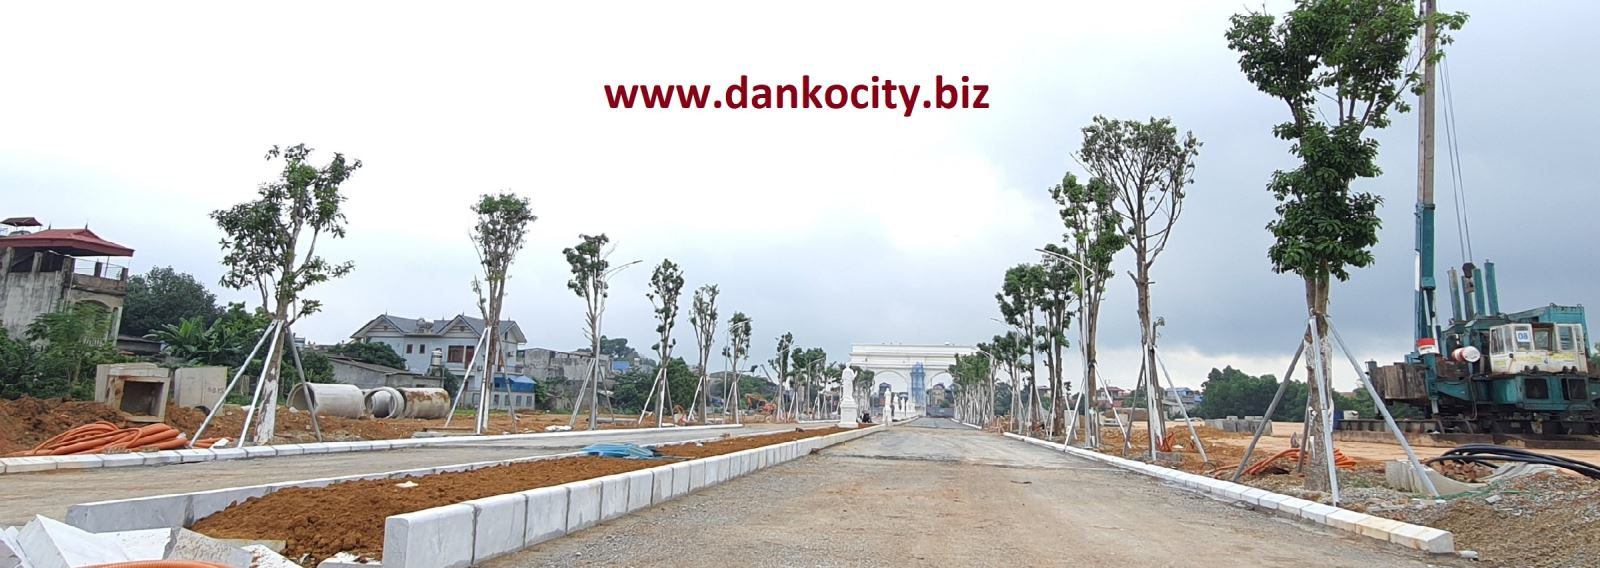 danko_city_danko_group_thai_nguyen